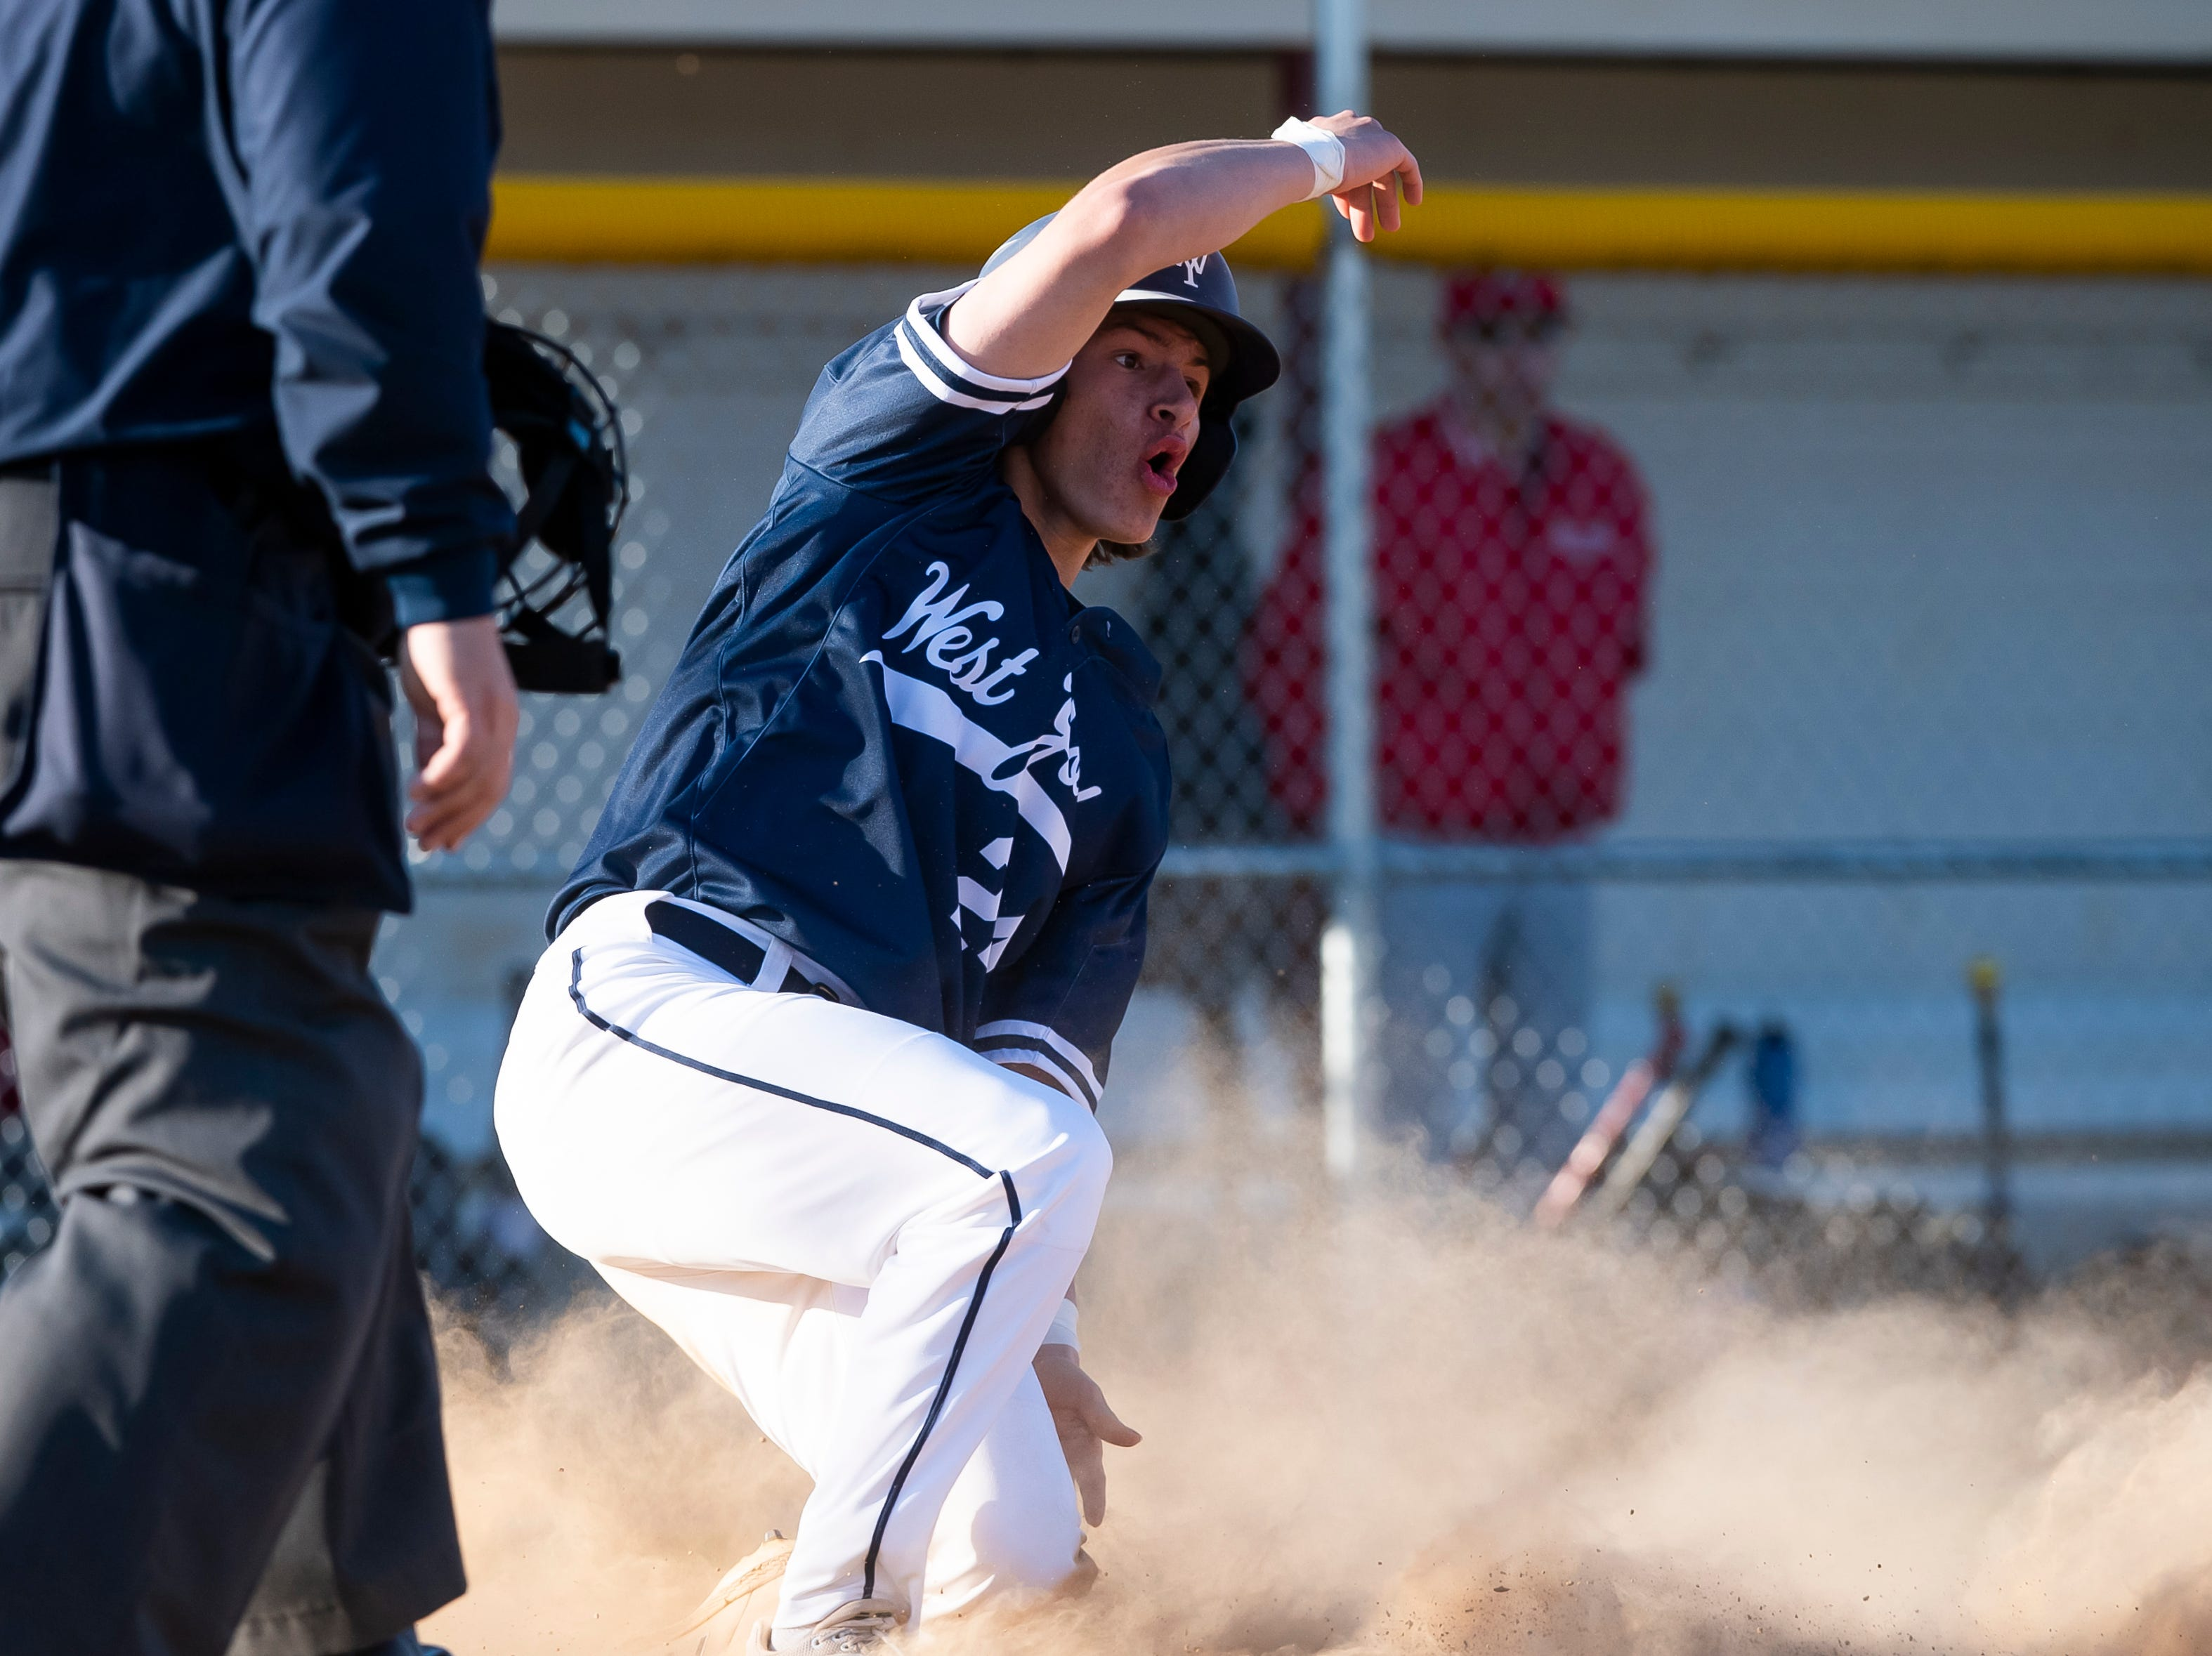 West York's Blaise Tanner reacts after sliding into home plate to score a run during a YAIAA baseball game against Bermudian Springs on Wednesday, April 3, 2019. The Bulldogs won 14-11.